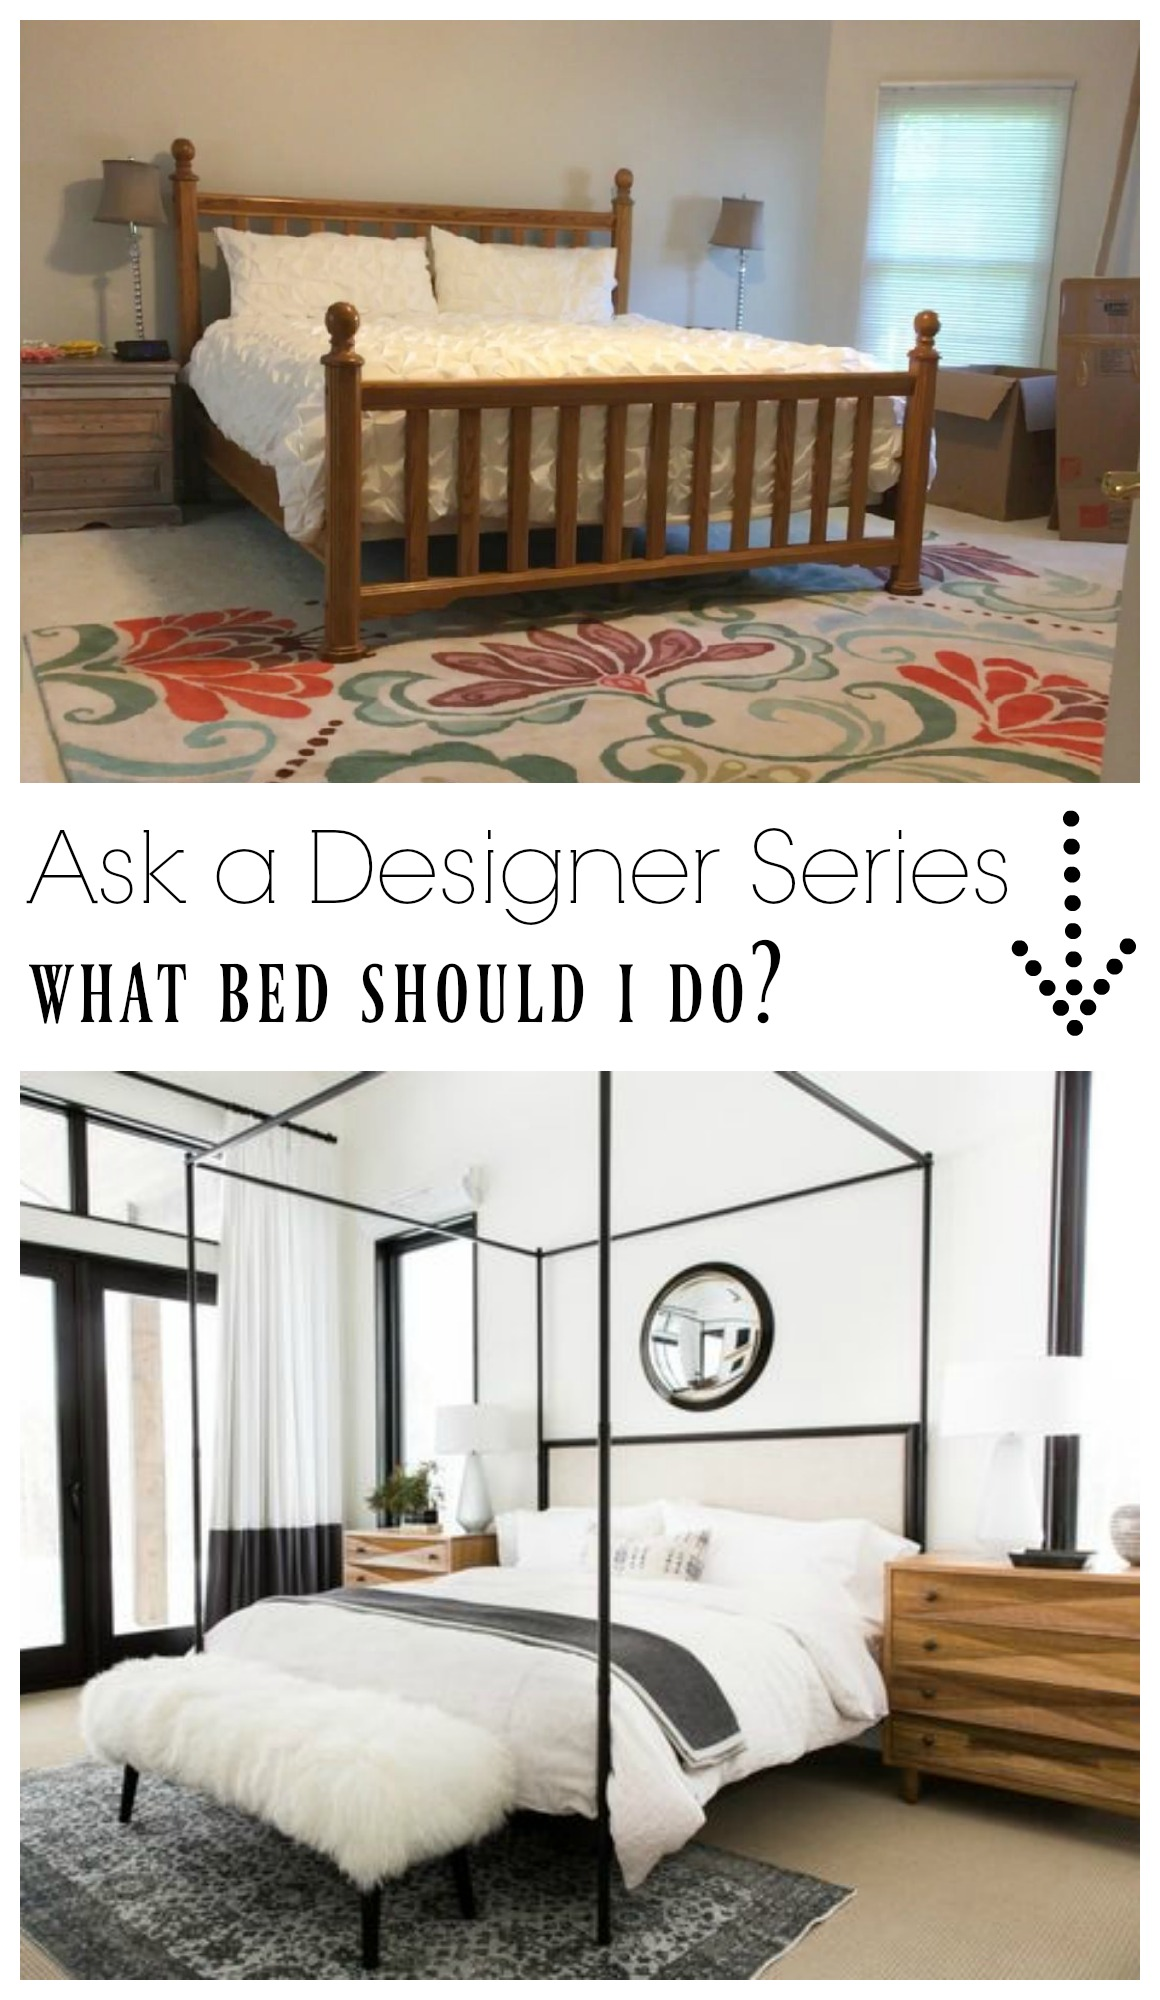 Ask a Desinger Series- What bed should I do in our master bedroom?